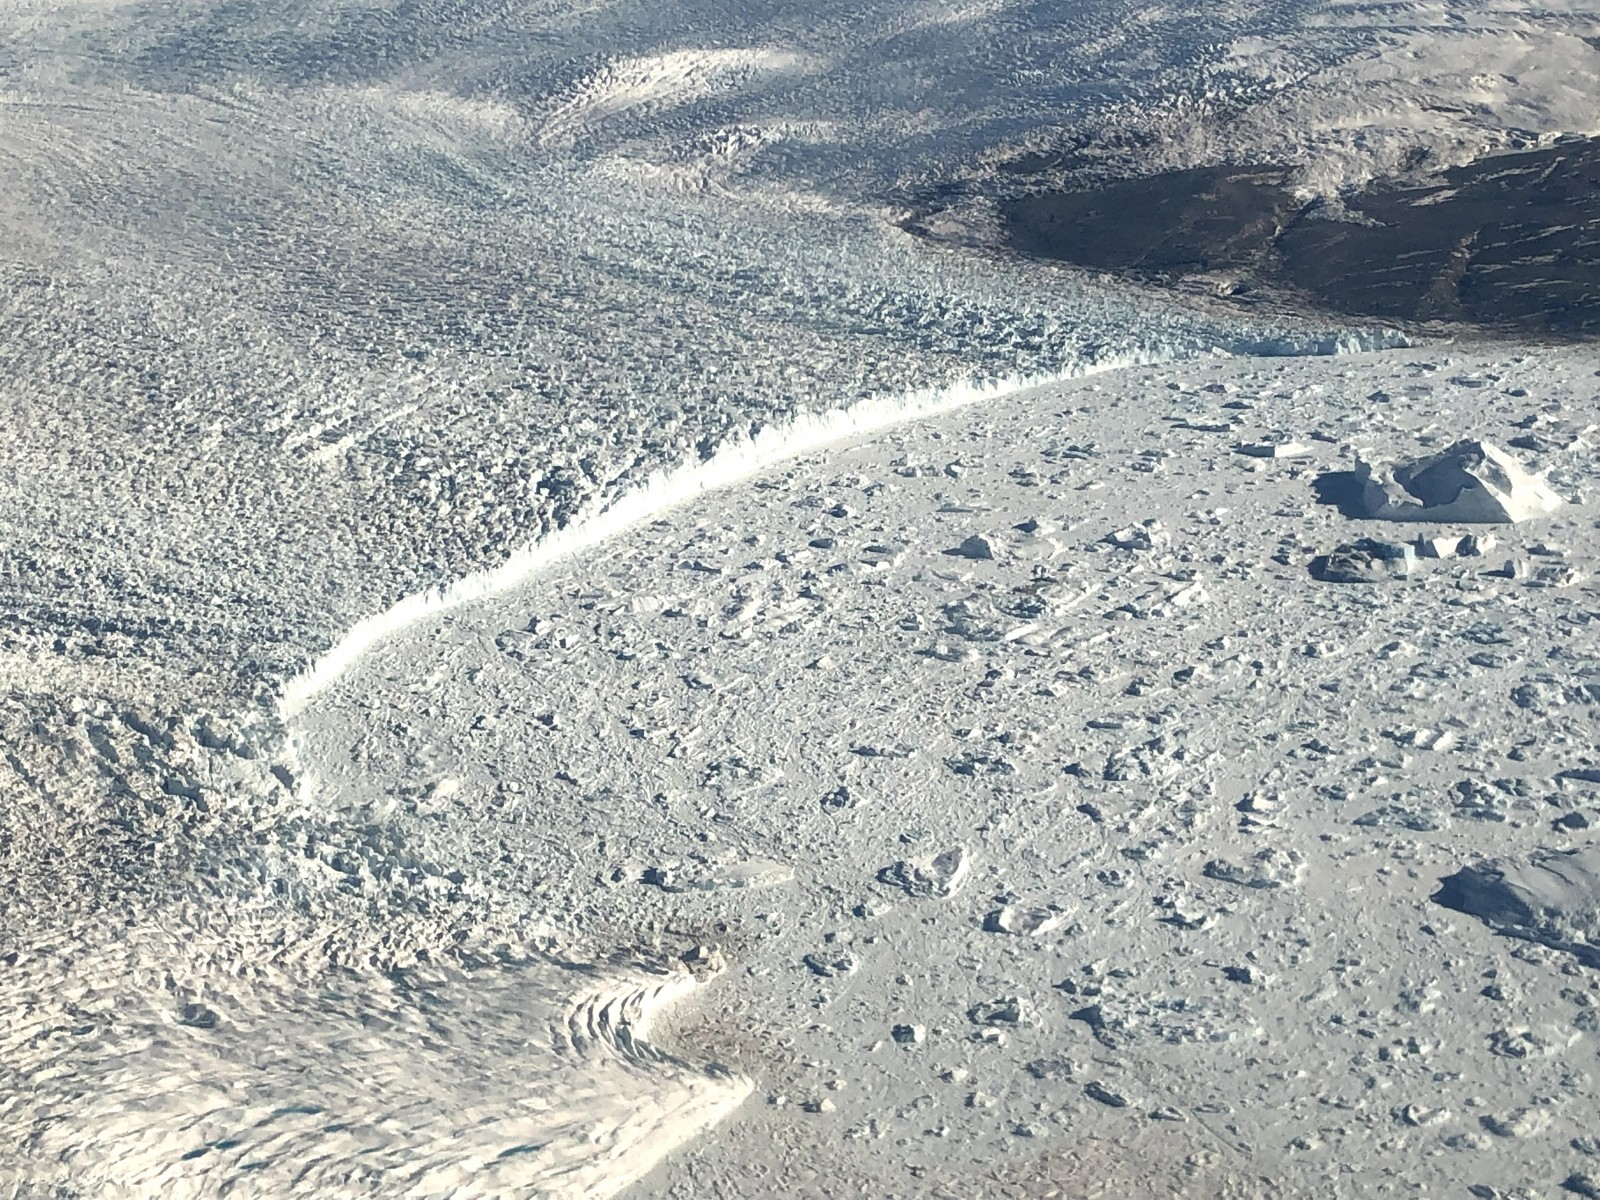 In a presentation at the annual meeting of the American Geophysical Union, scientists released satellite images that, for the first time, show how fast Greenland's glaciers are retreating. The image shows a sharp increase in retreat beginning around 2000.